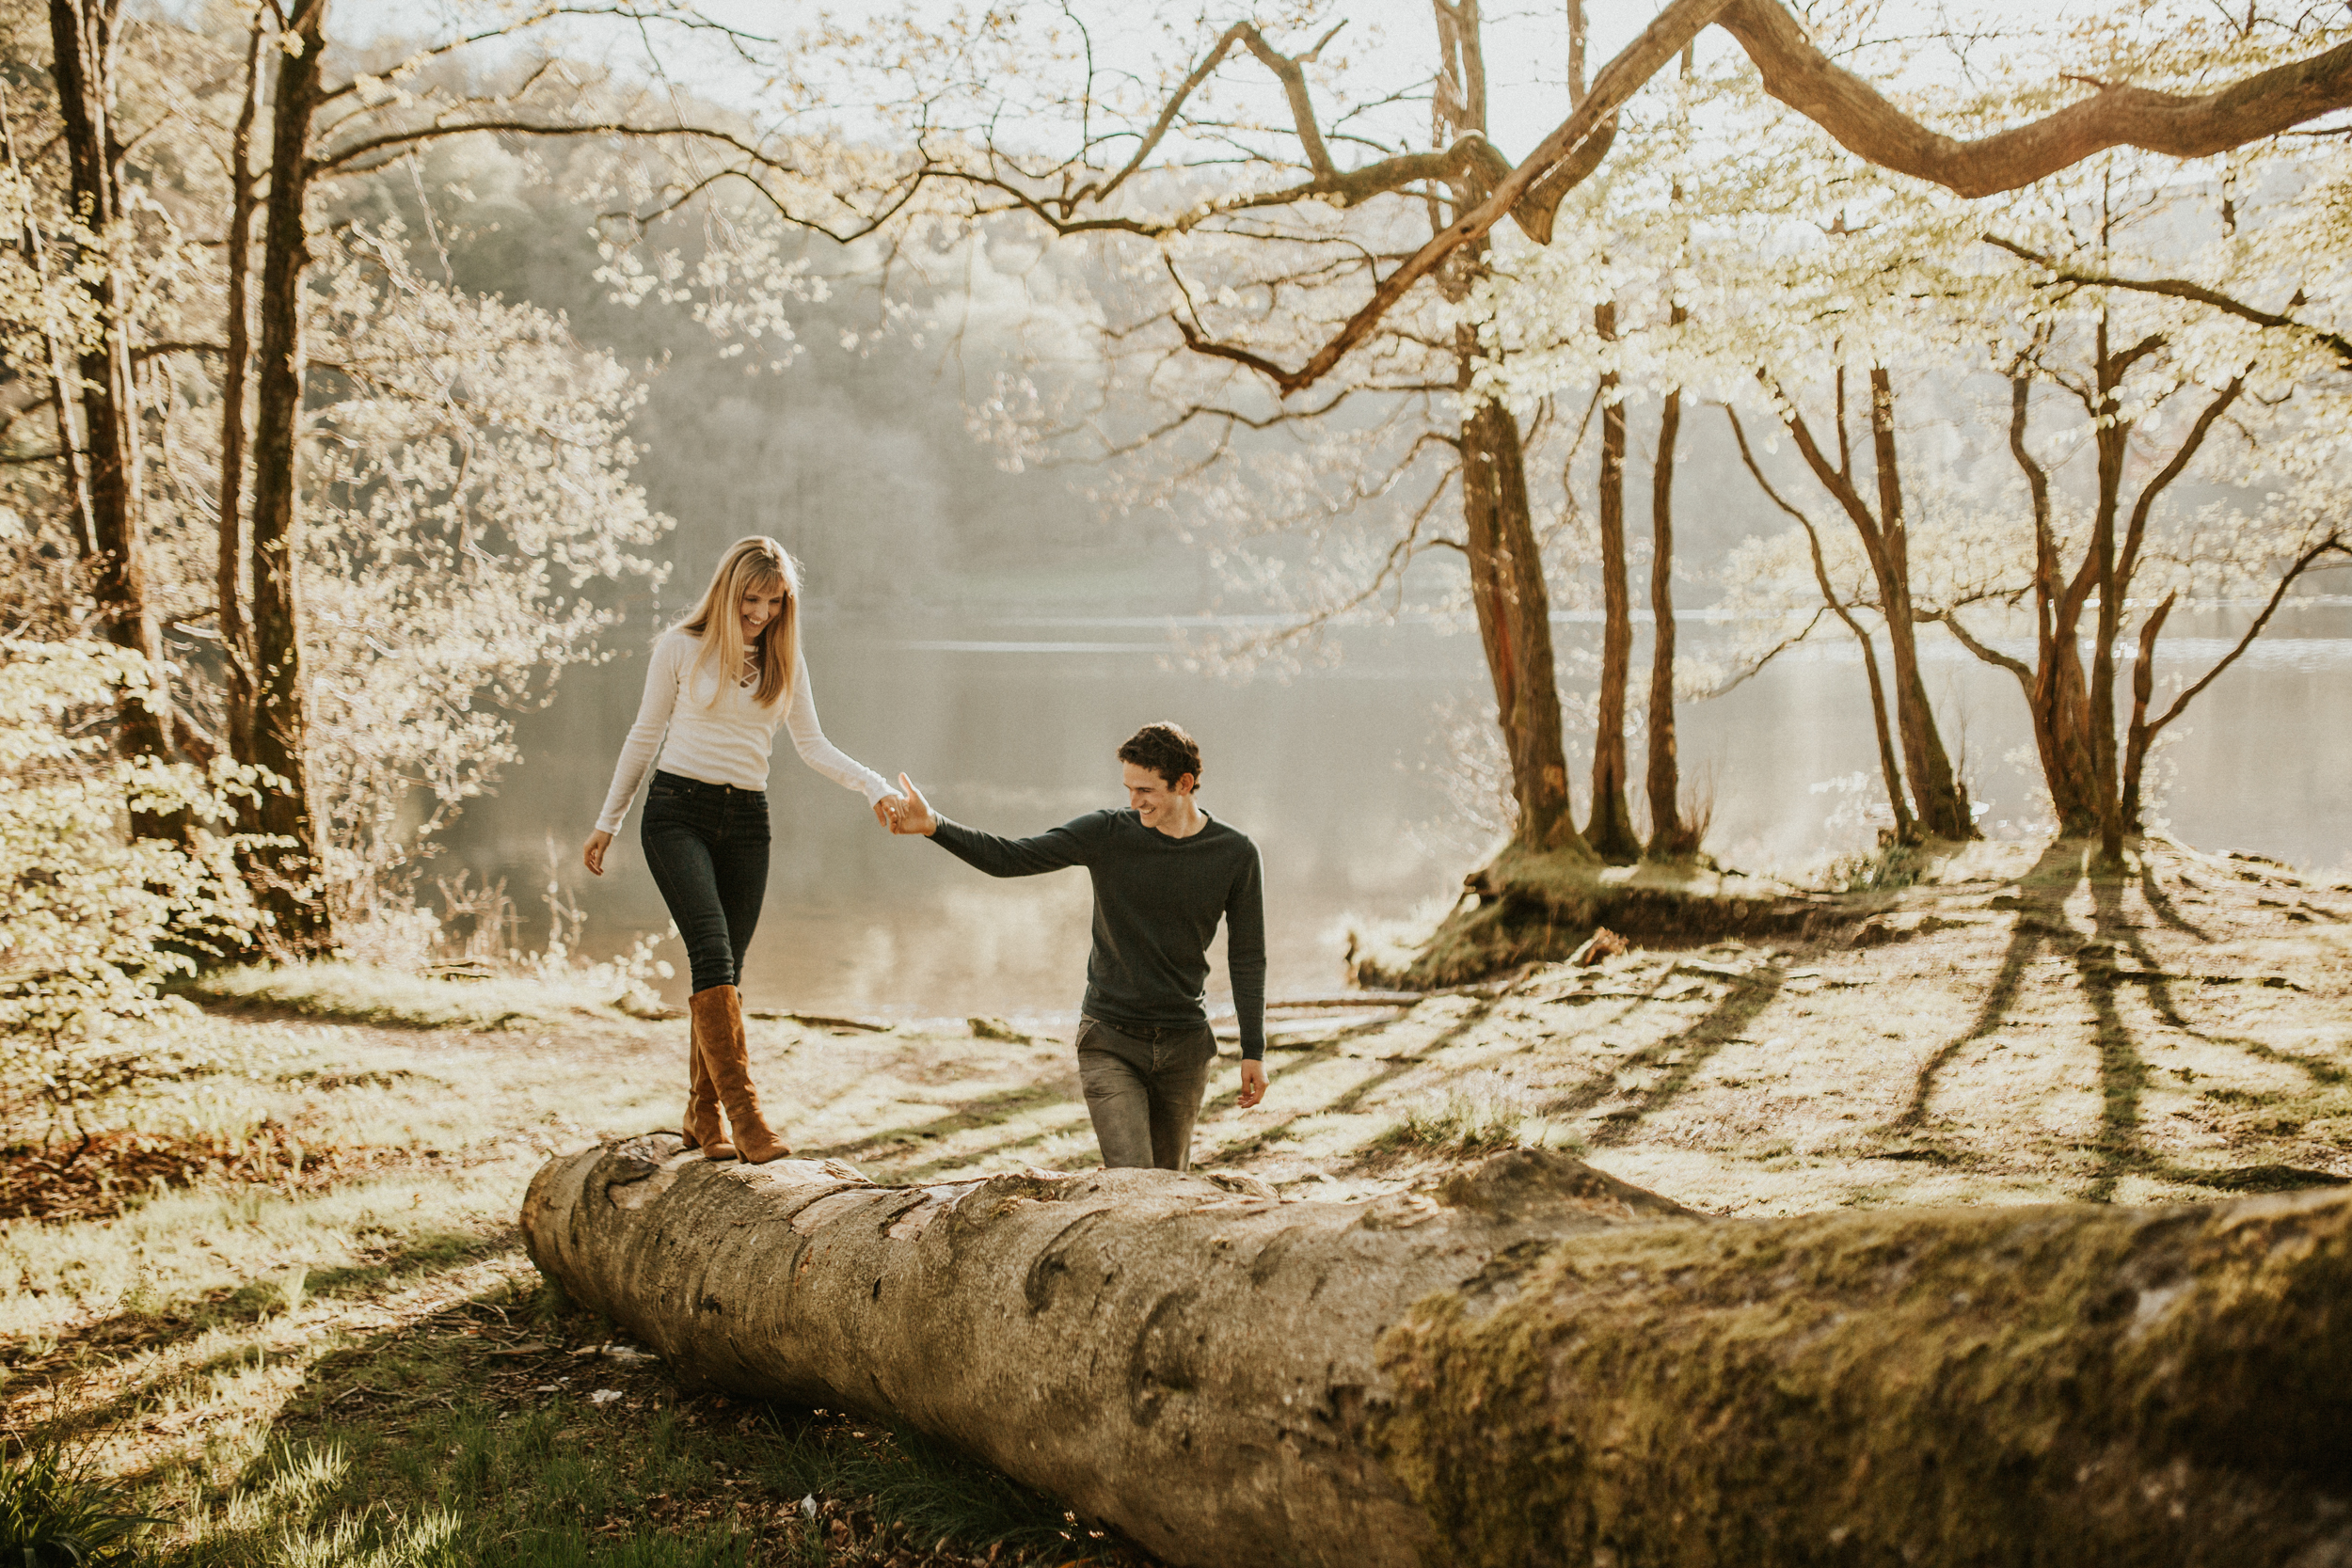 Claire-Clive-Engagement-Shoot-Lake-District-Darina-Stoda-Photography-29.jpg